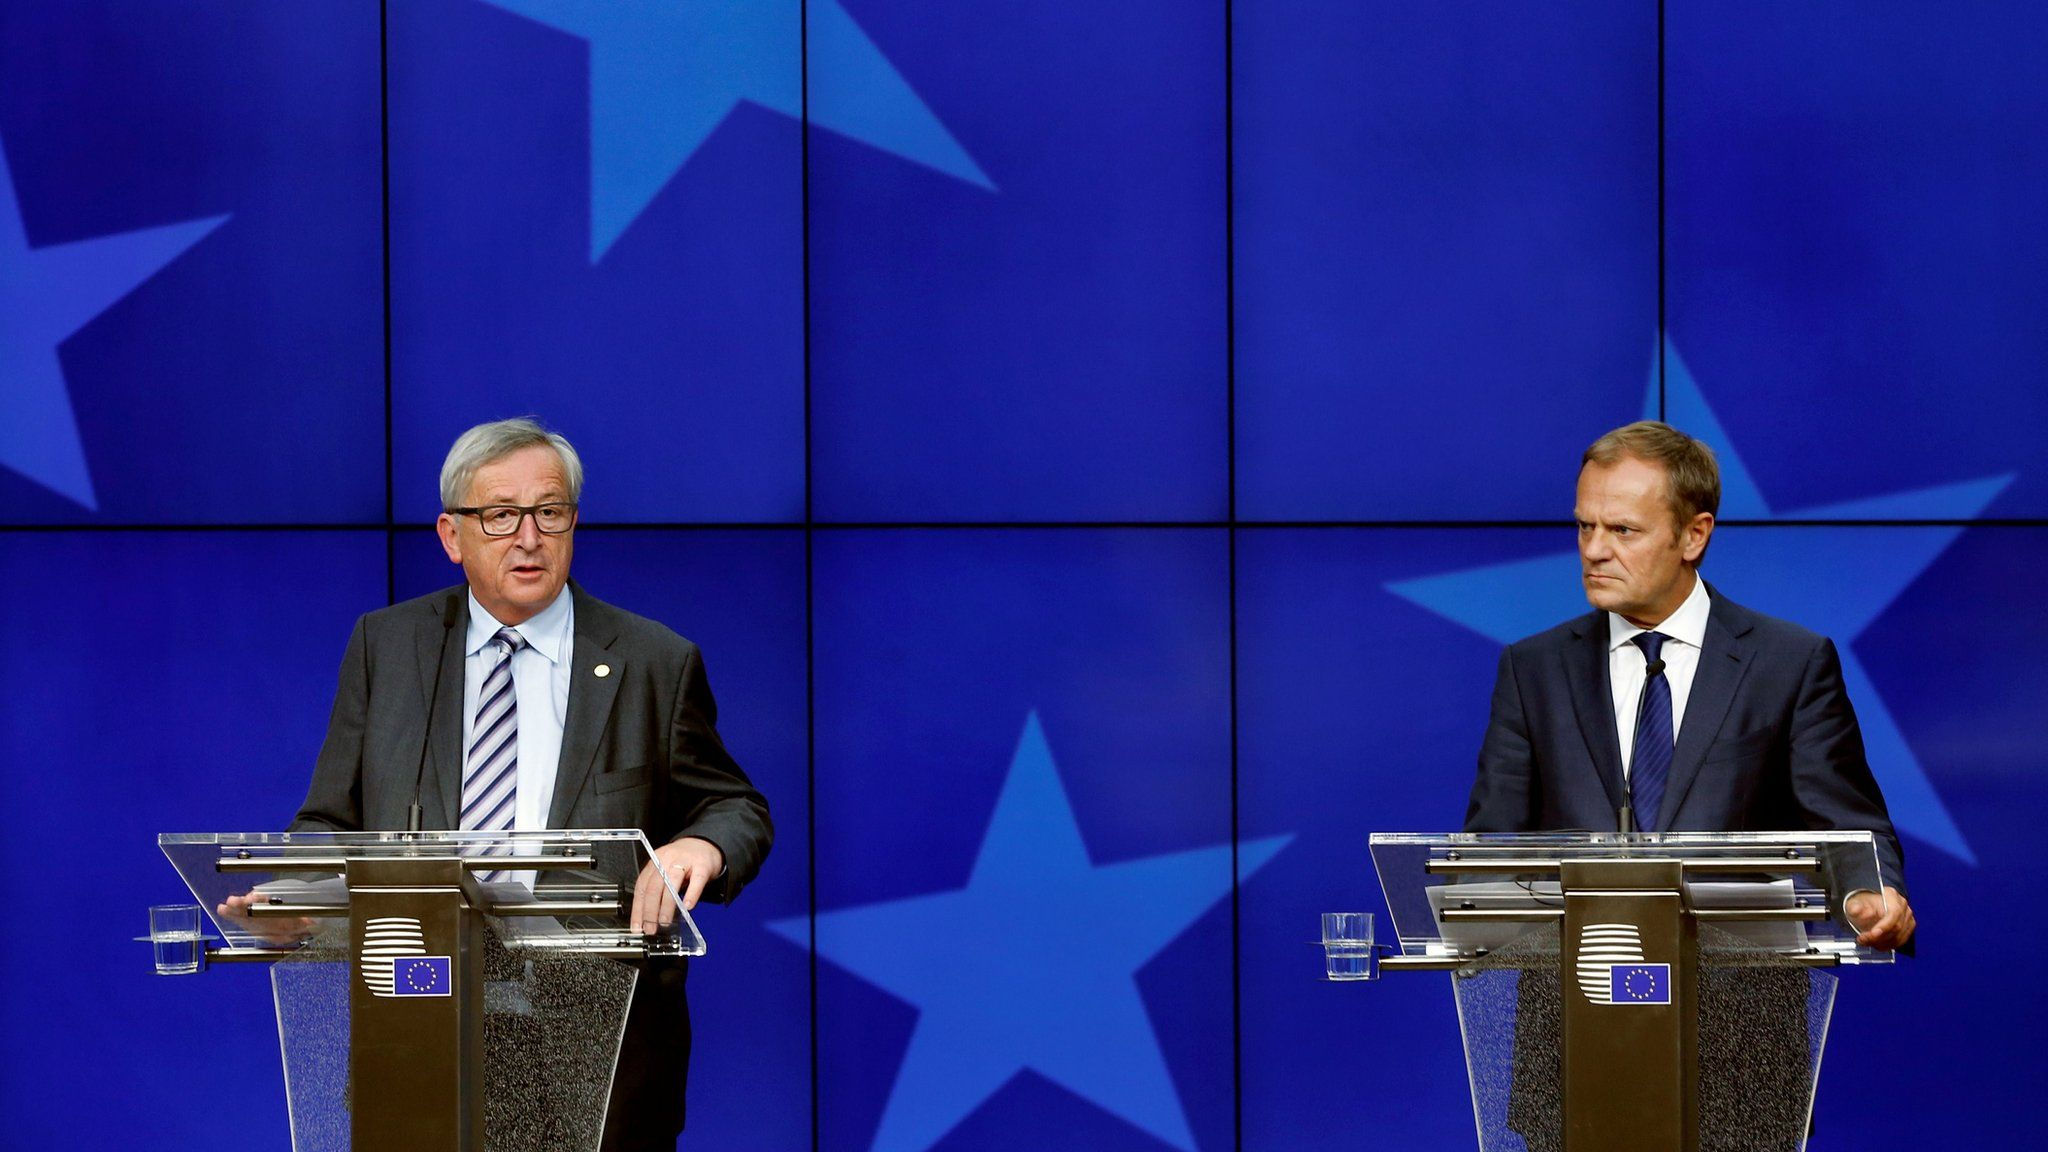 European Commission President Jean-Claude Juncker and European Council President Donald Tusk (R) address a joint news conference on the second day of the EU Summit in Brussels, Belgium, June 29, 2016